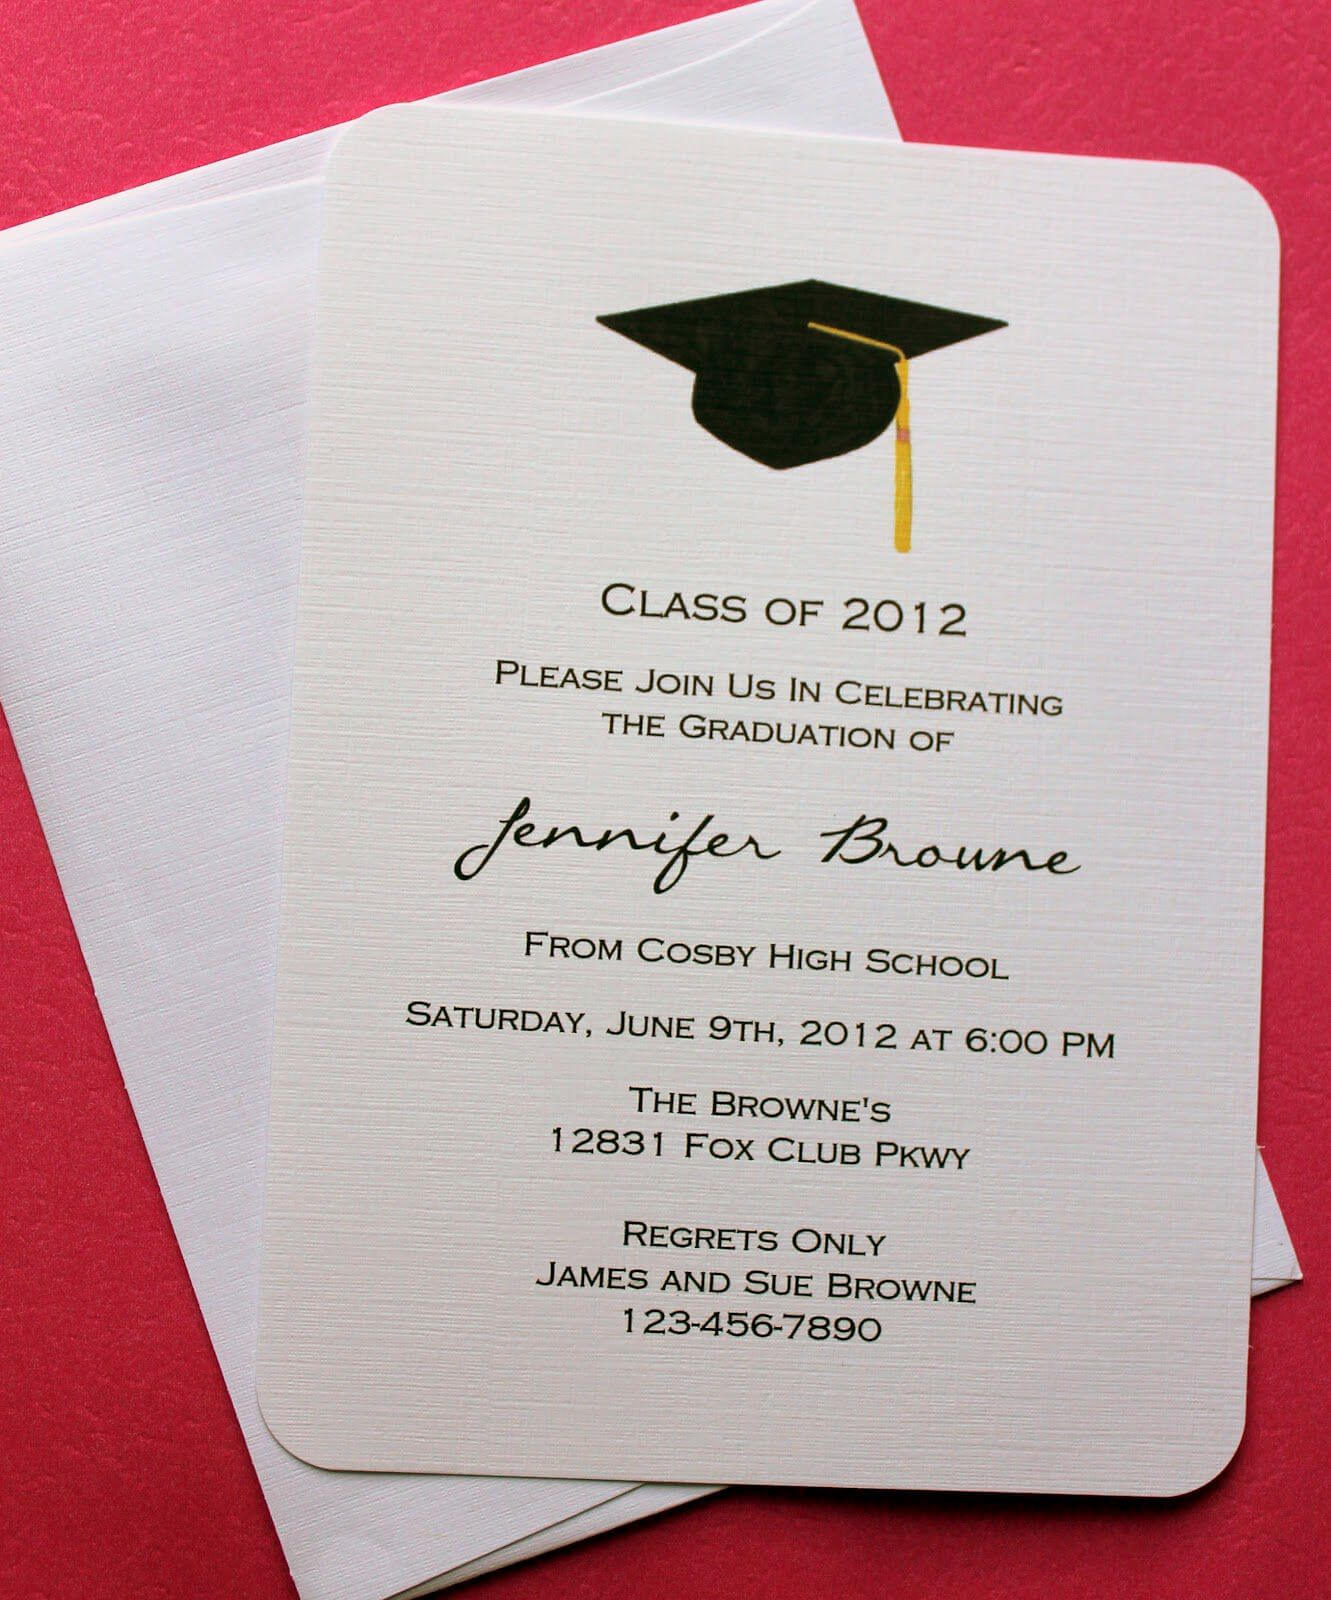 Graduation Invitation Templates Microsoft Word | Graduation With Regard To Free Graduation Invitation Templates For Word